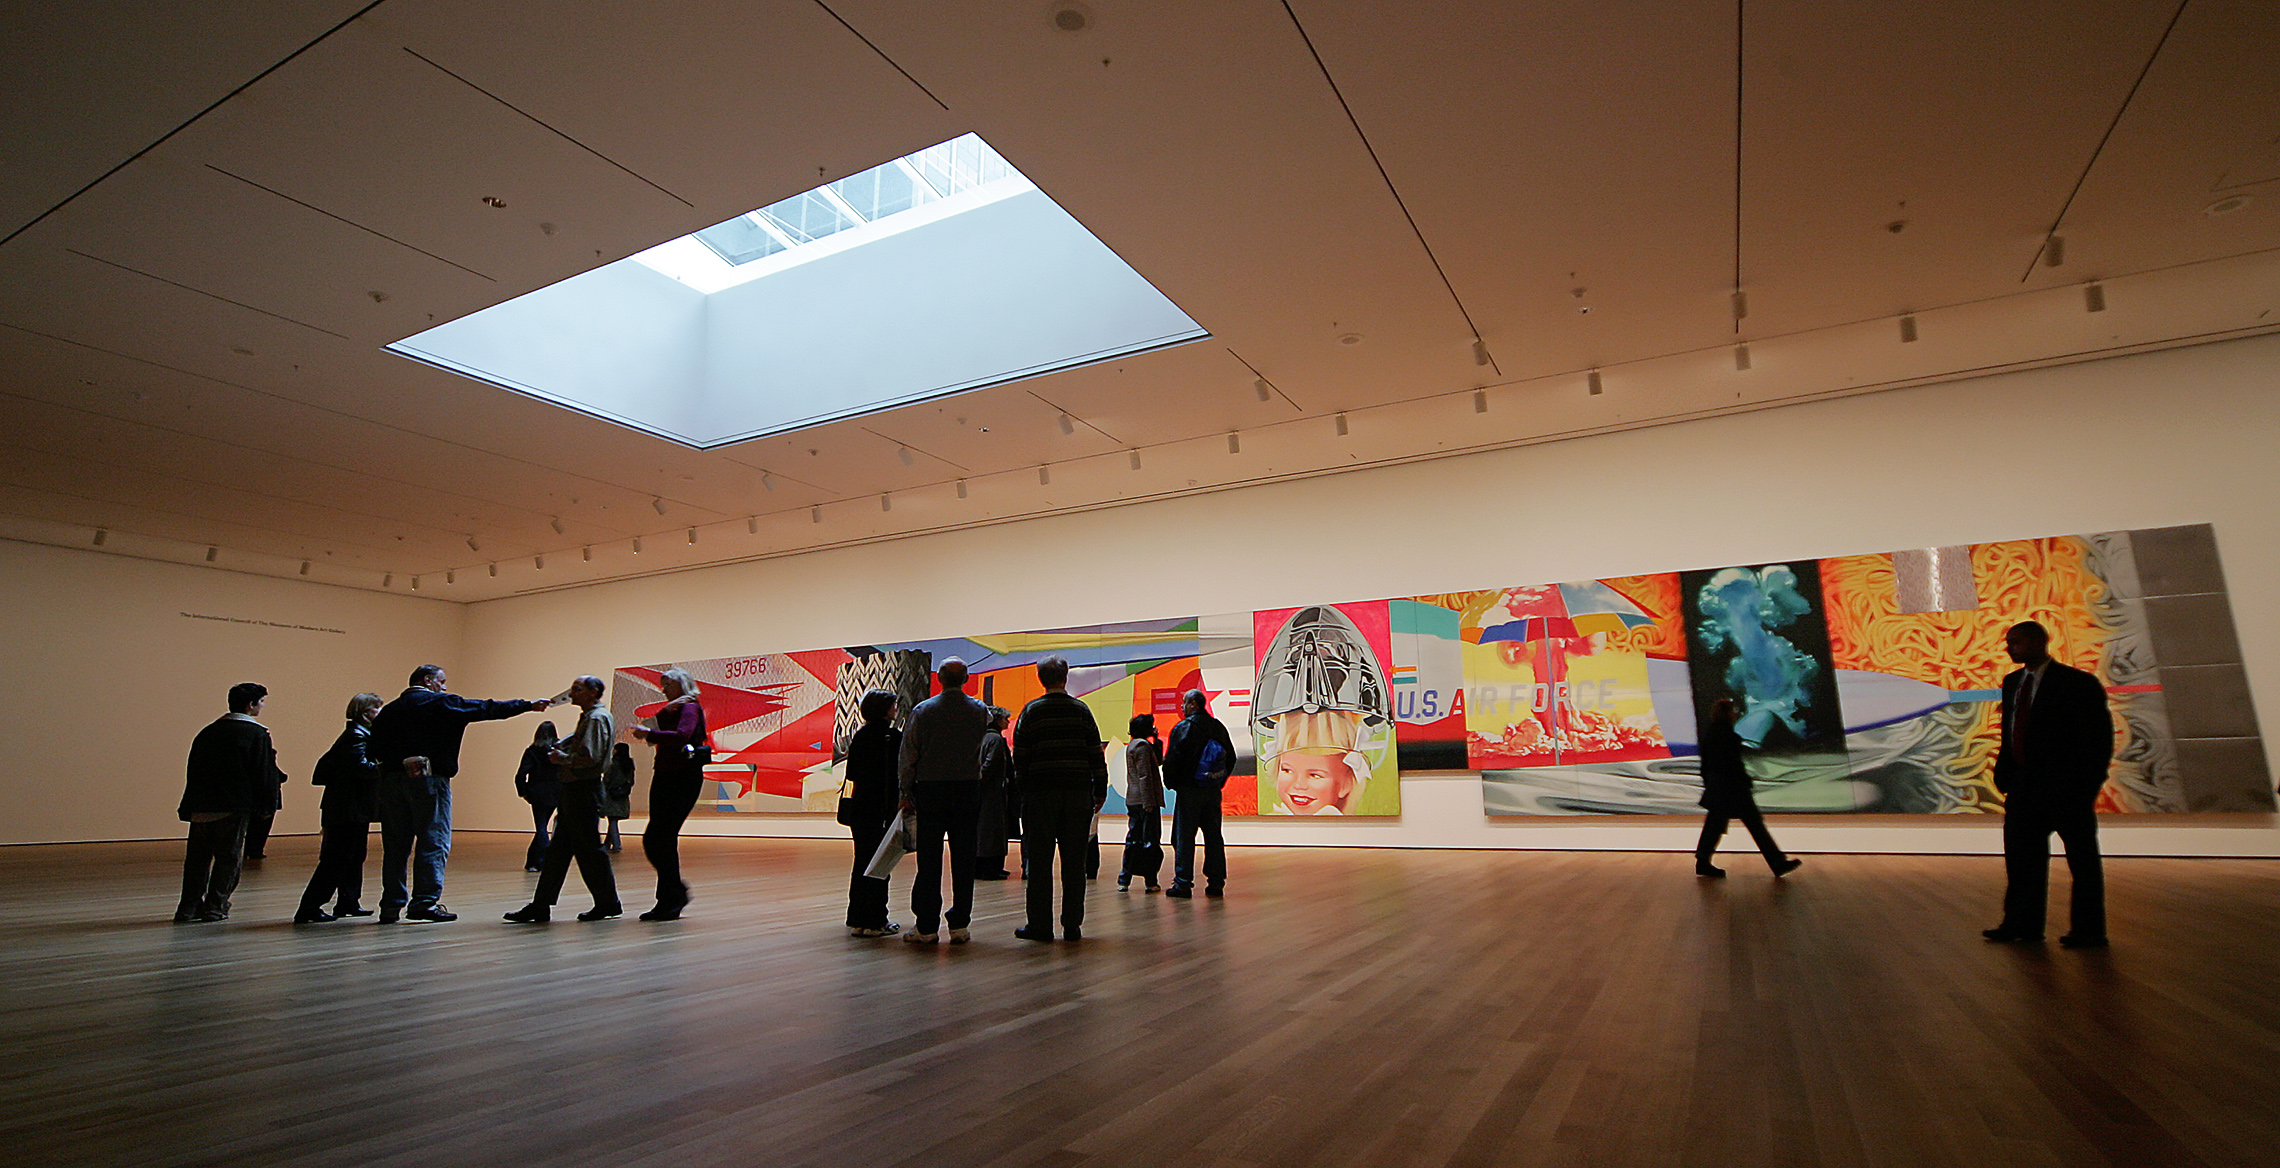 MoMA Reopens After $858 Million Renovation